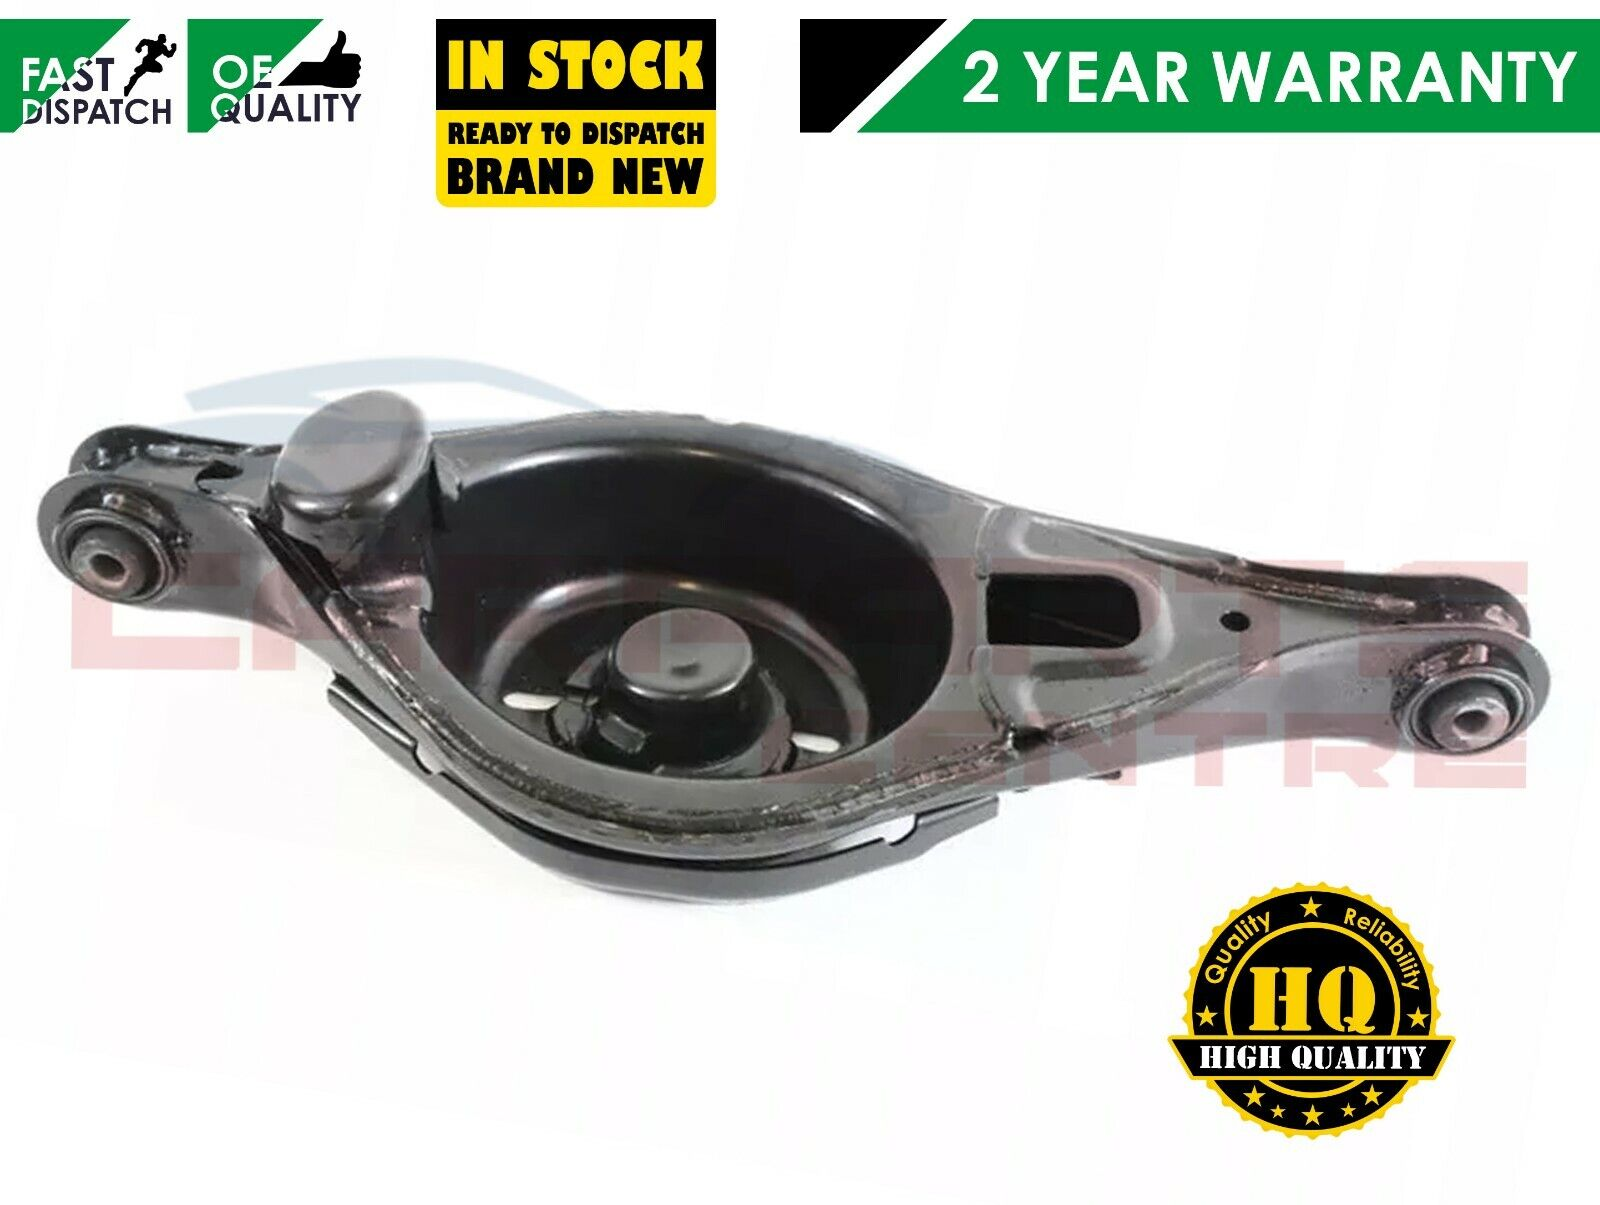 Wishbone Suspension Arm fits MAZDA 6 GG 1.8 Front Lower 02 to 07 Track Control